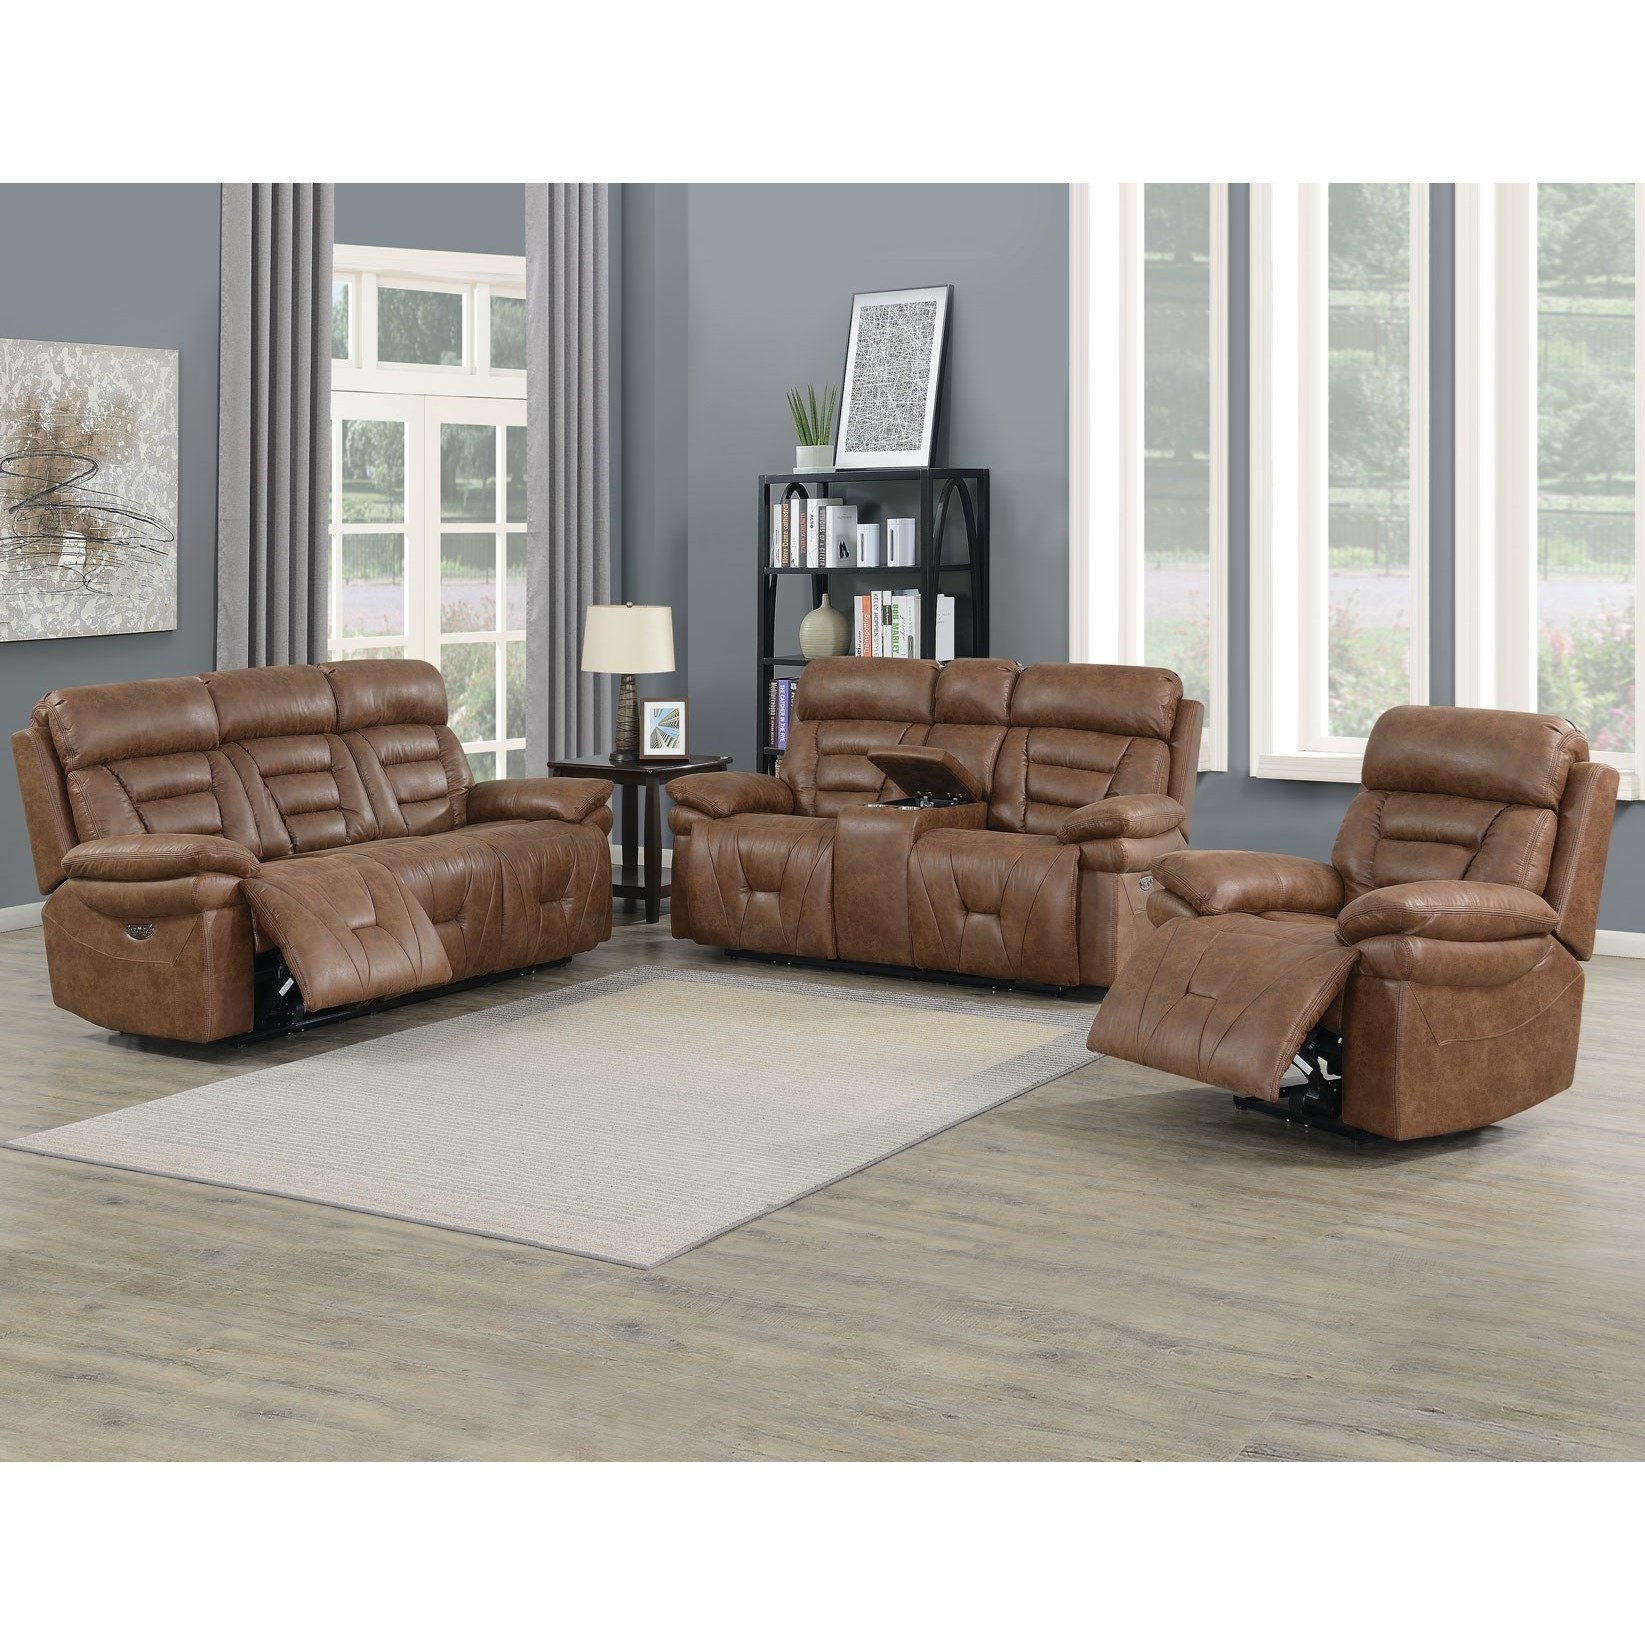 Casual Lay Flat Power Reclining Living Room Group